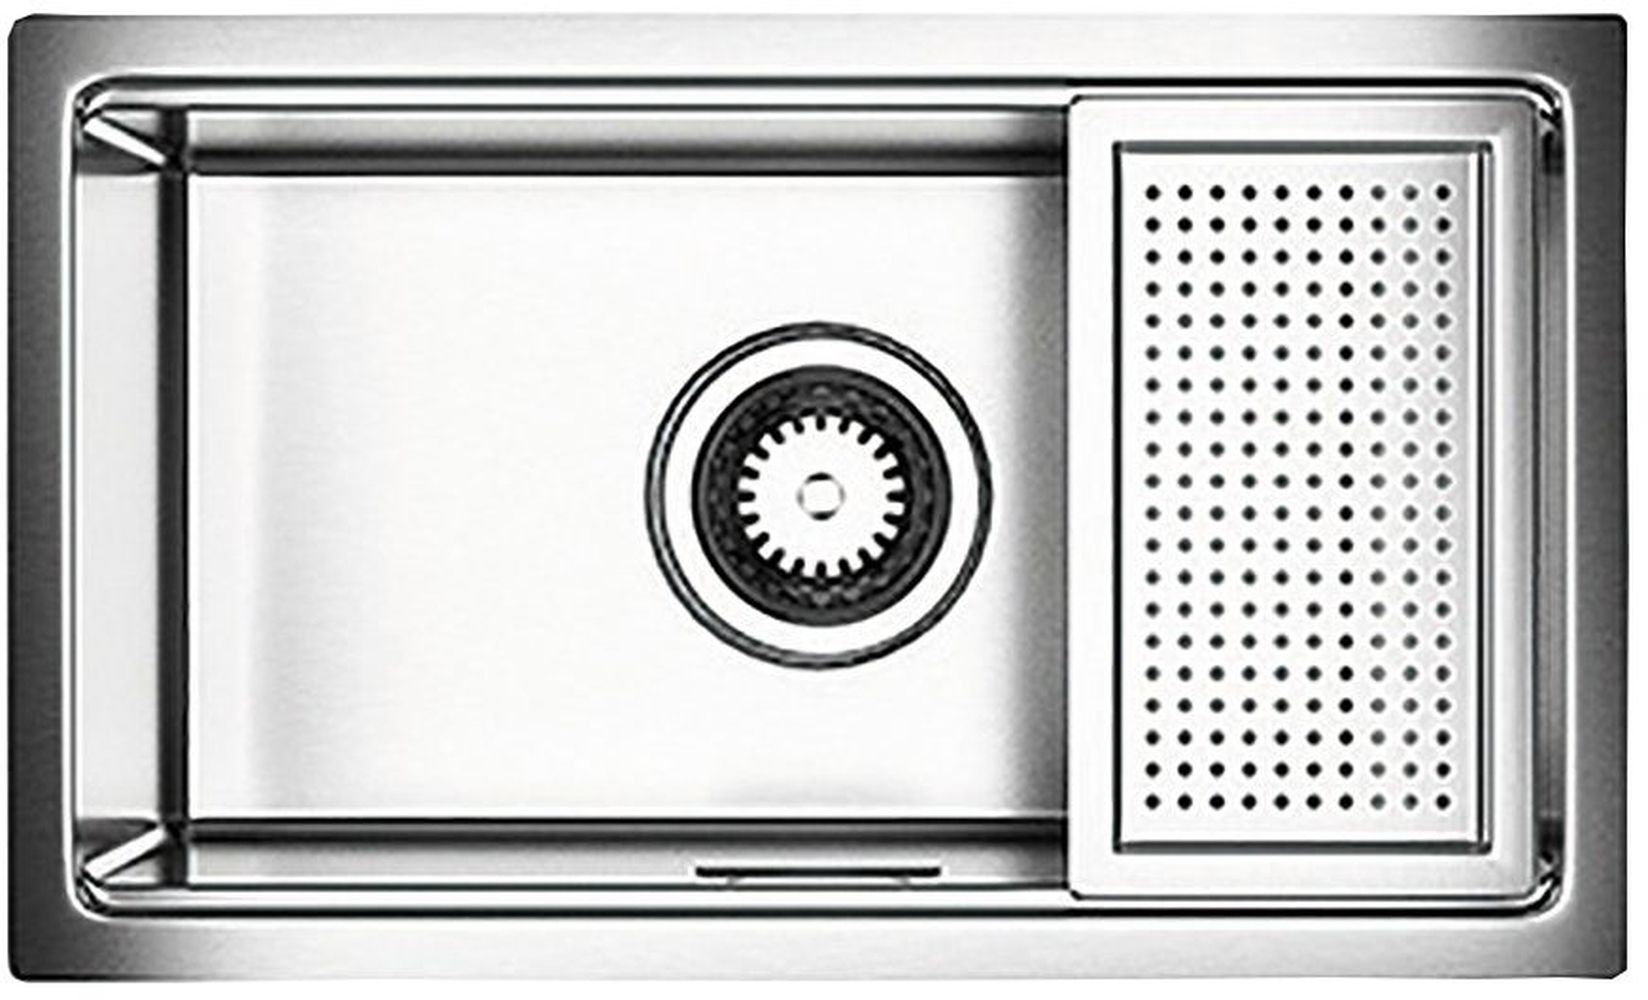 Astracast Single Bowl Kitchen Stainless Steel Compact Sink | Wickes.co.uk